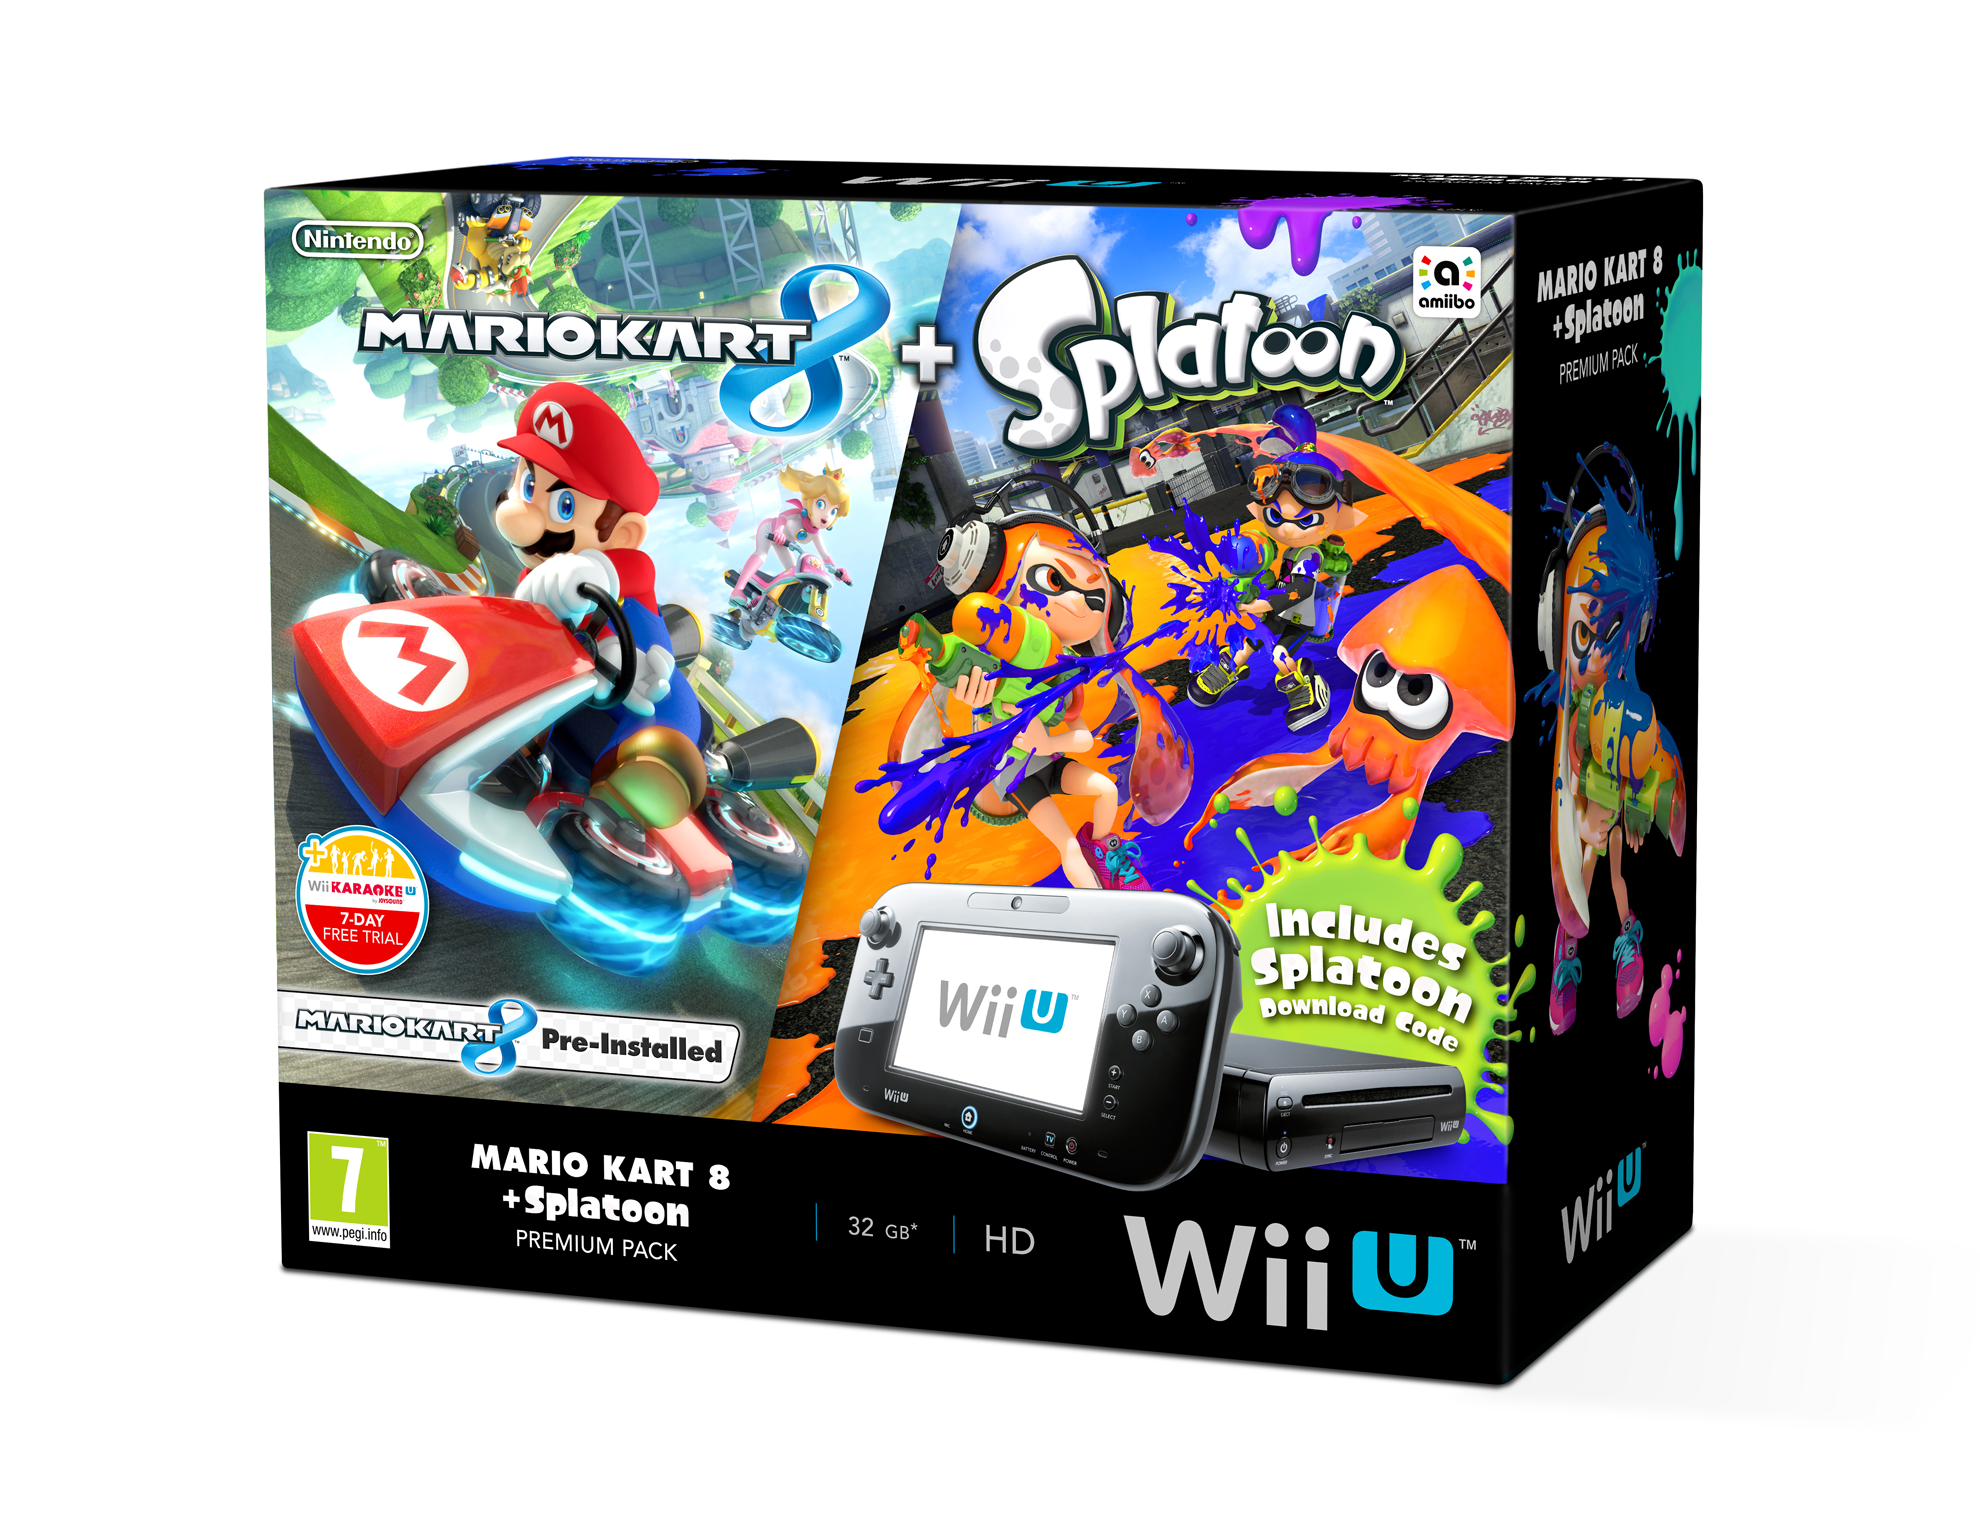 wii u bundle with mario kart 8 splatoon coming to europe on october 30th perfectly nintendo. Black Bedroom Furniture Sets. Home Design Ideas